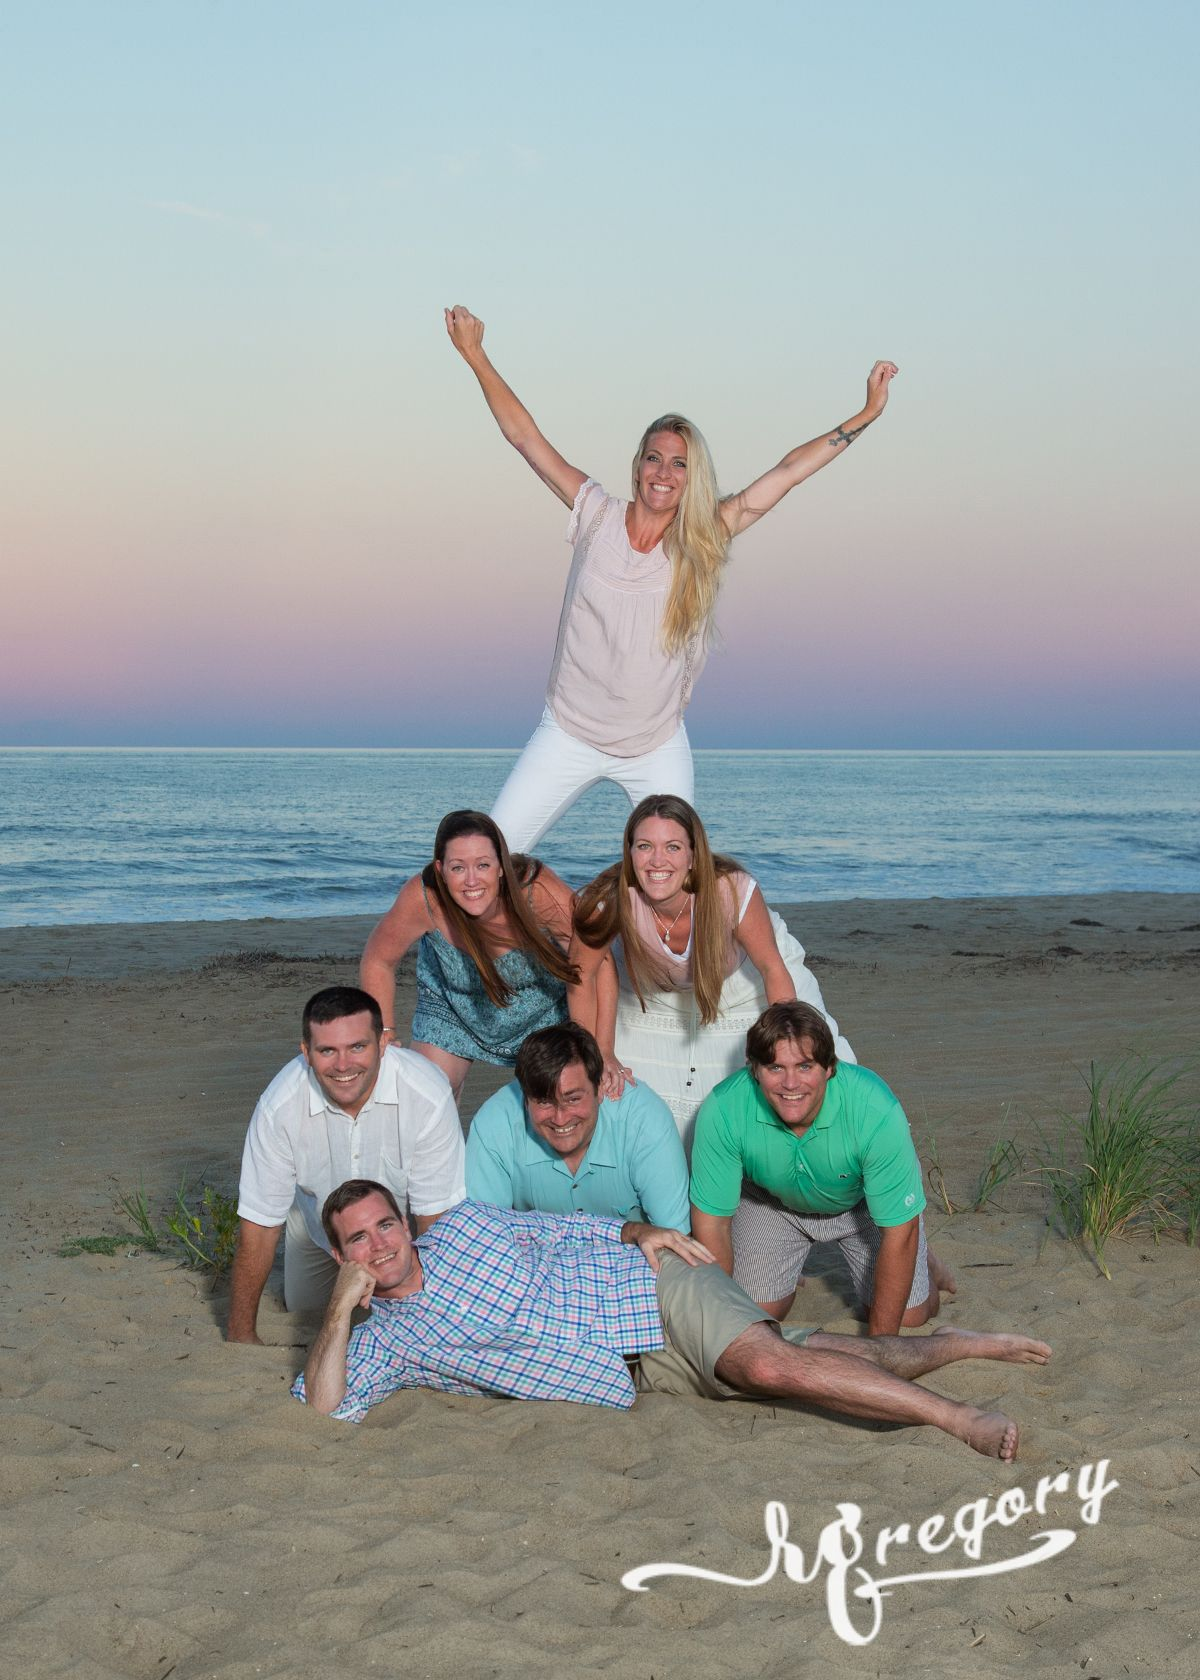 Woltjen family portrait pyramid on beach